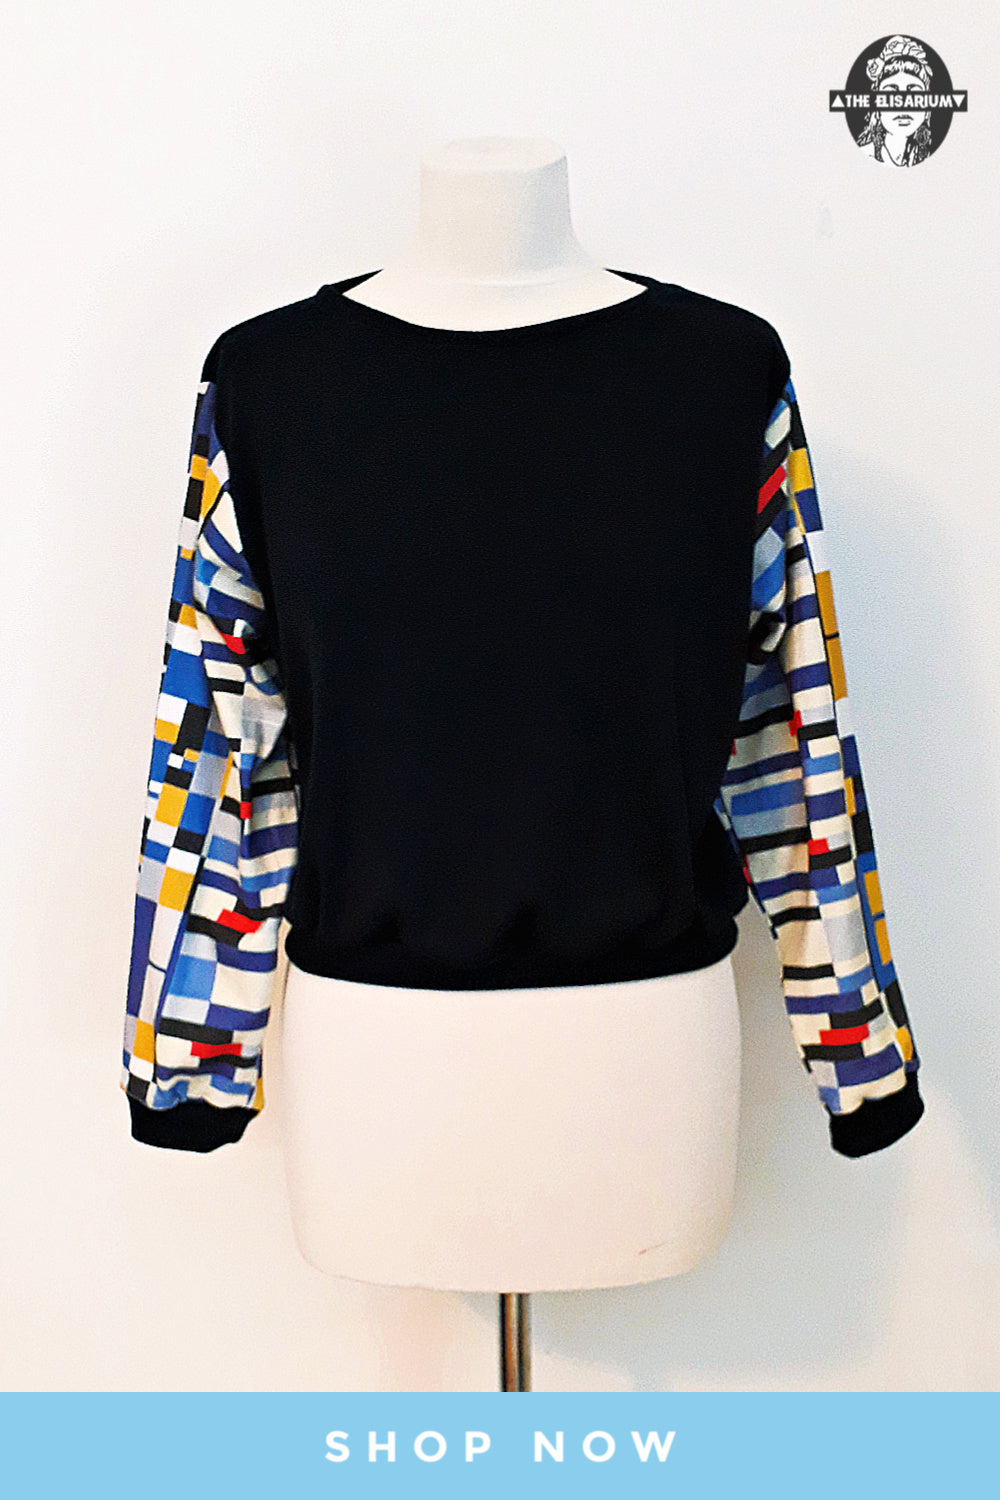 handmade sweatshirt jersey and organic cotton color abstract printlong sleeves